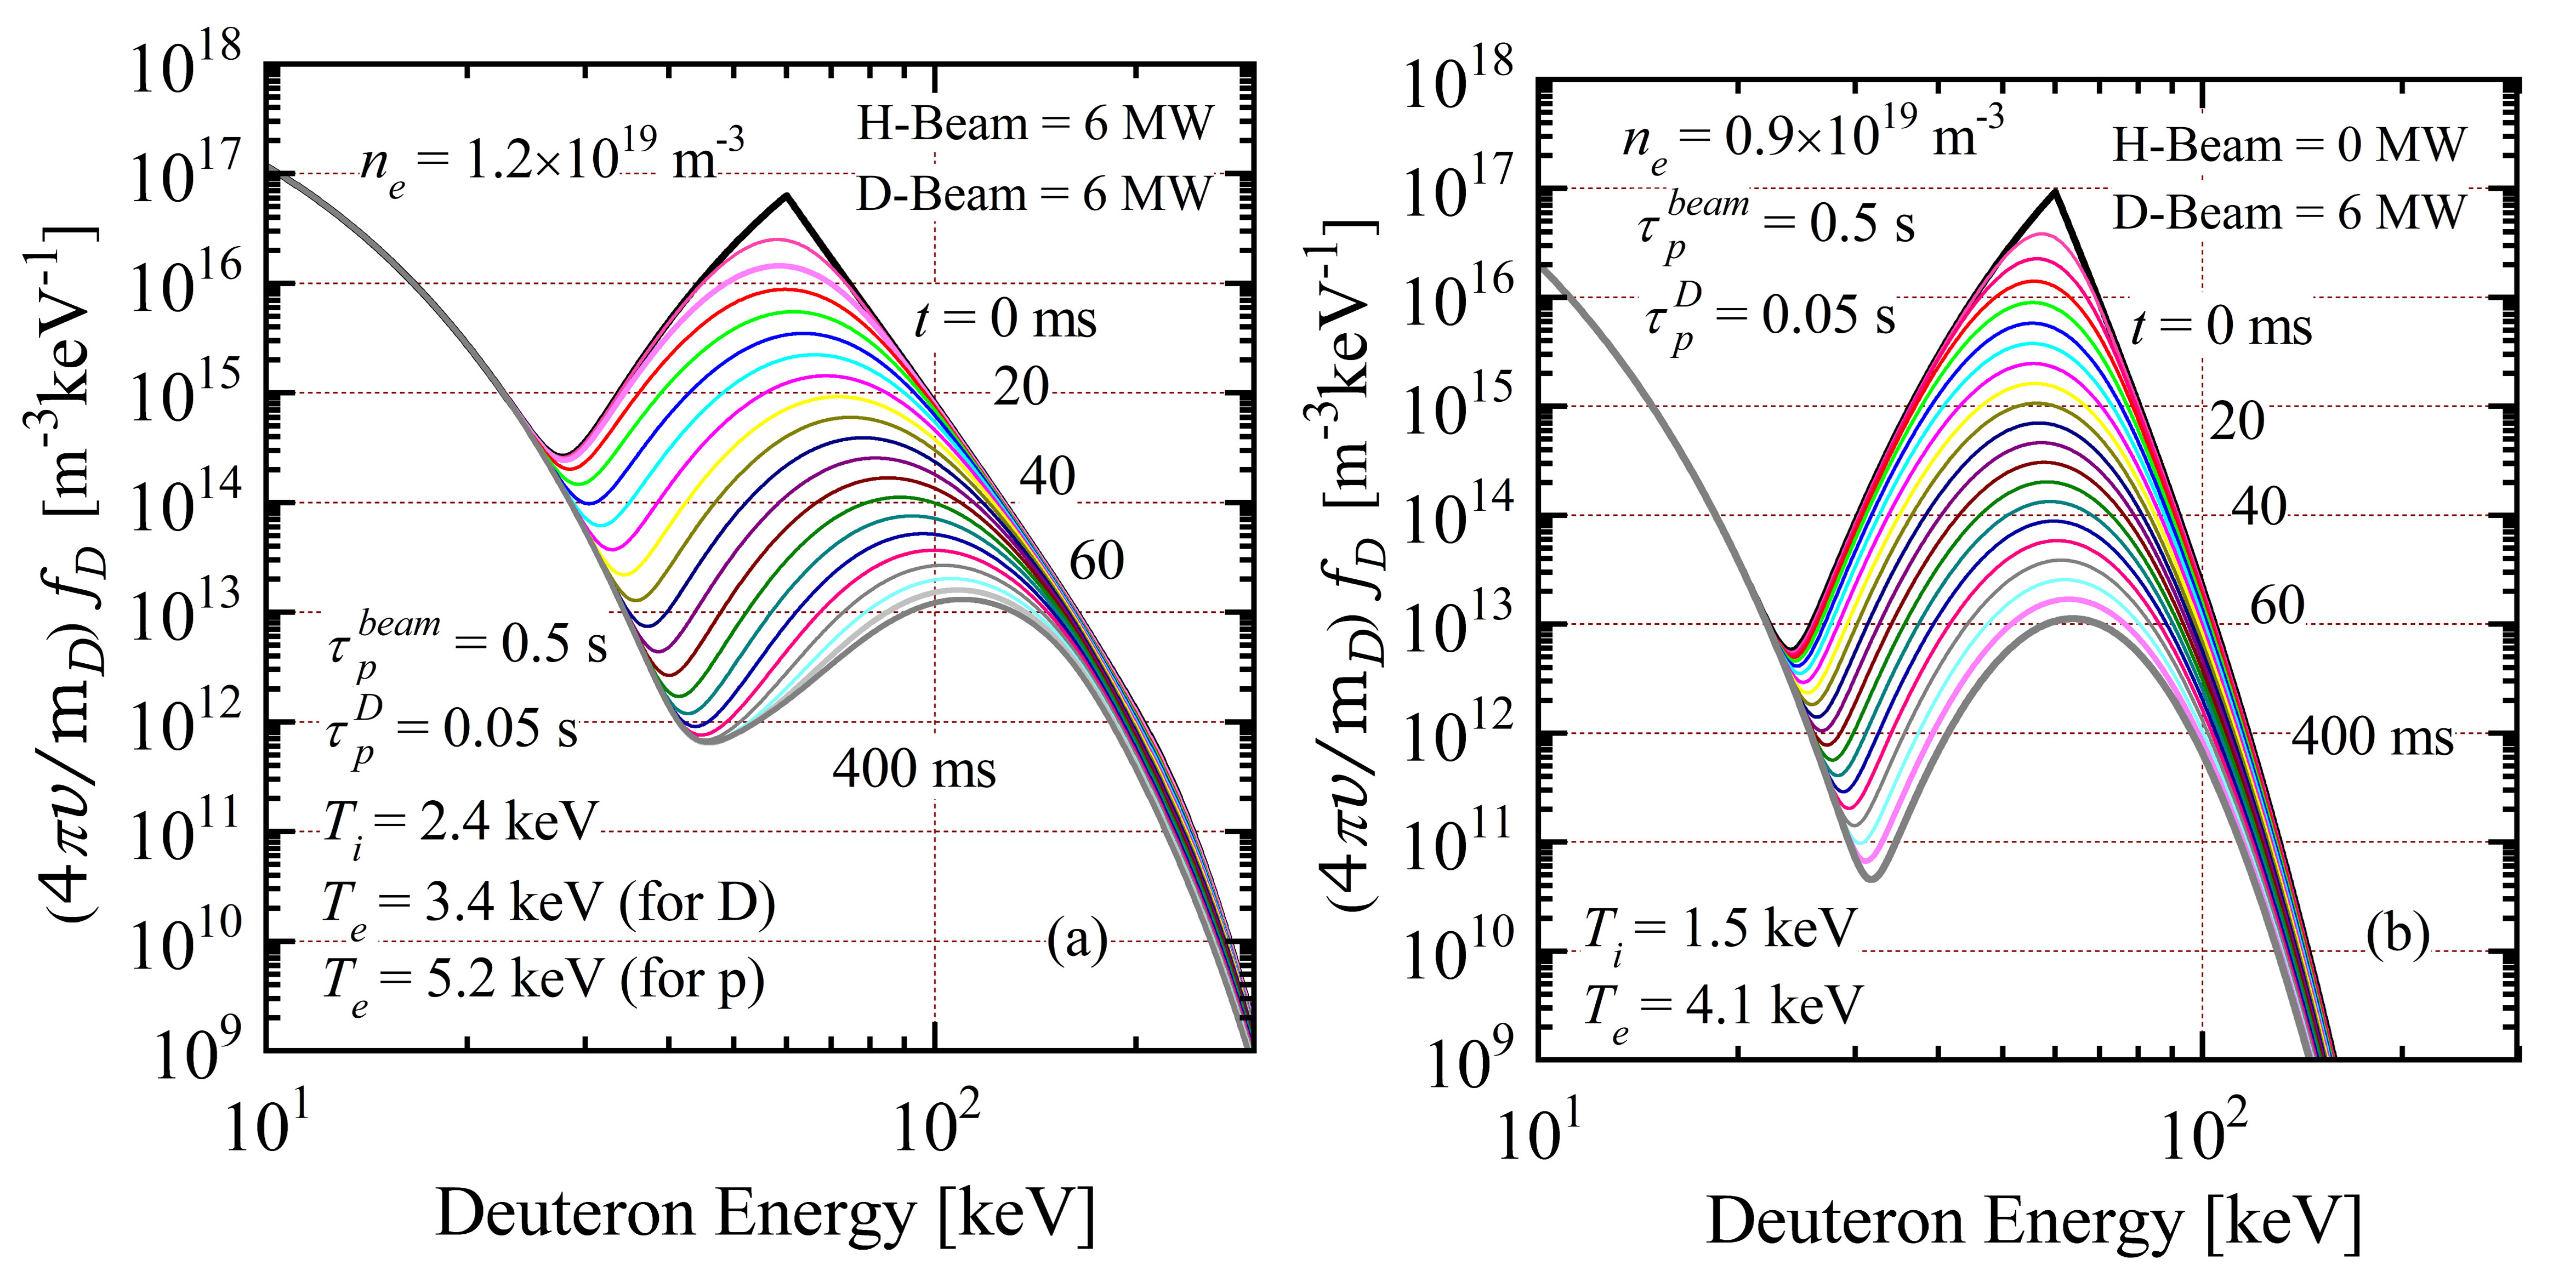 Time variations of deuteron distribution functions (a) with and (b) without H-beam.